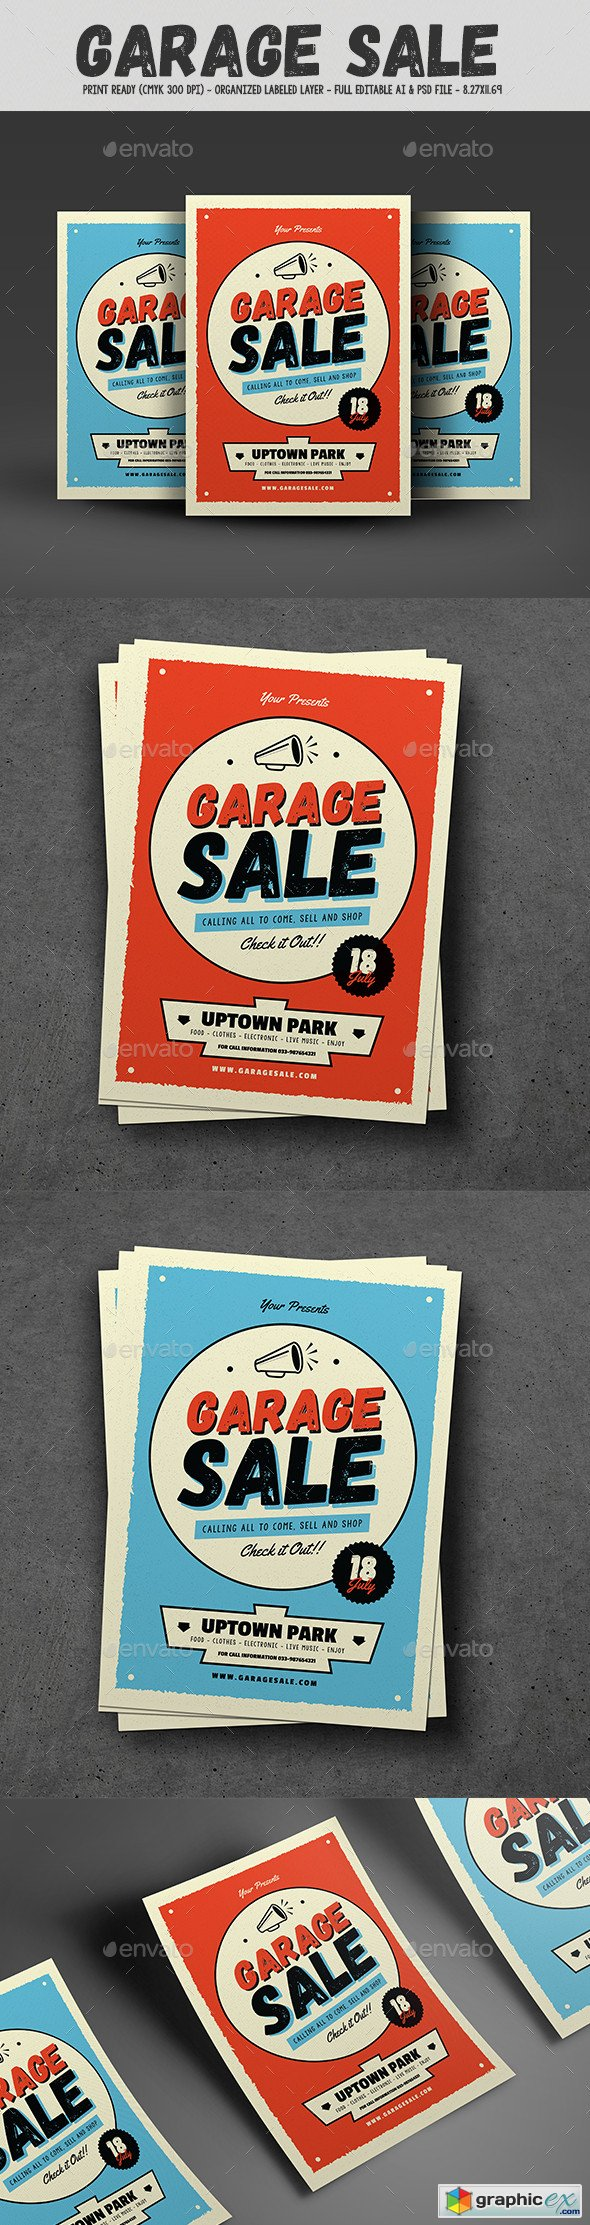 Garage Sale Flyer by Guuver 16683065